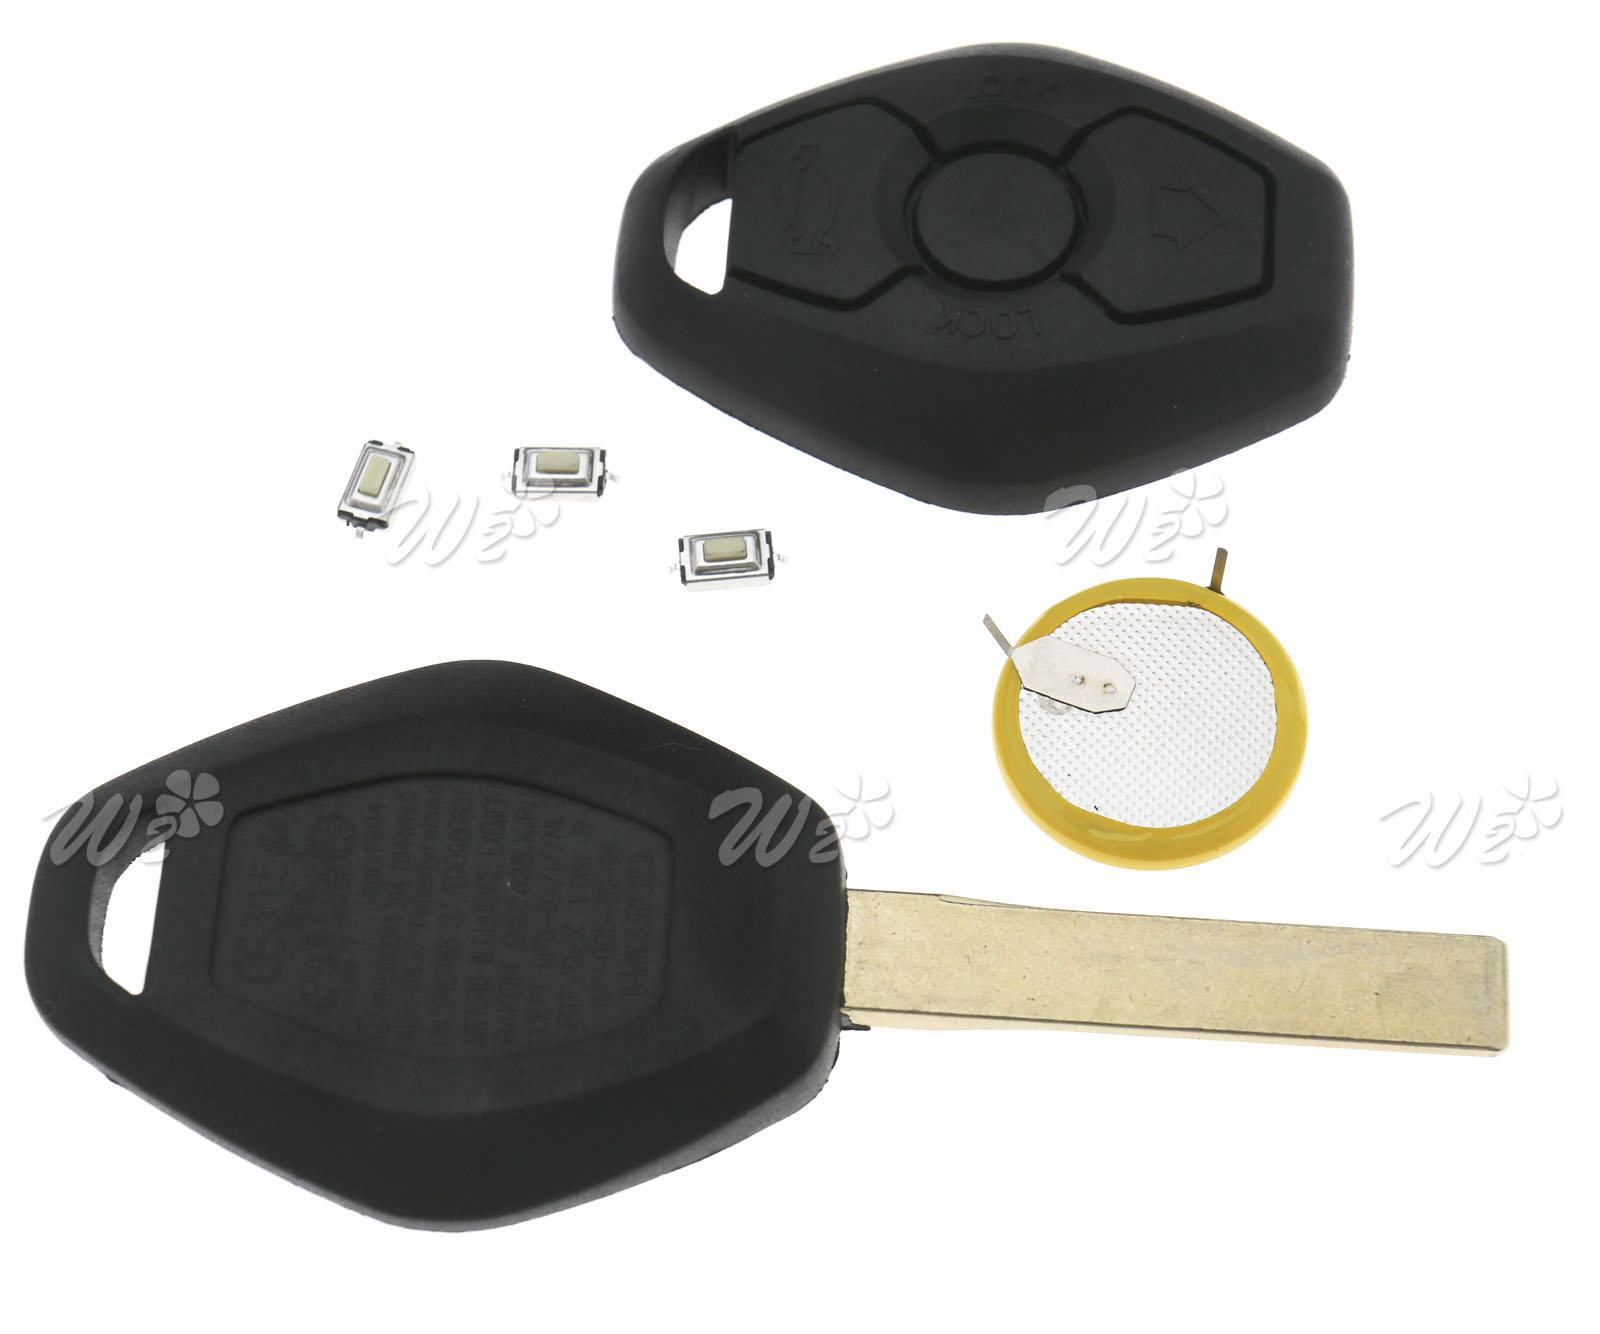 Replacement 3 Button Remote Key Fob Lir2025 Battery Kit